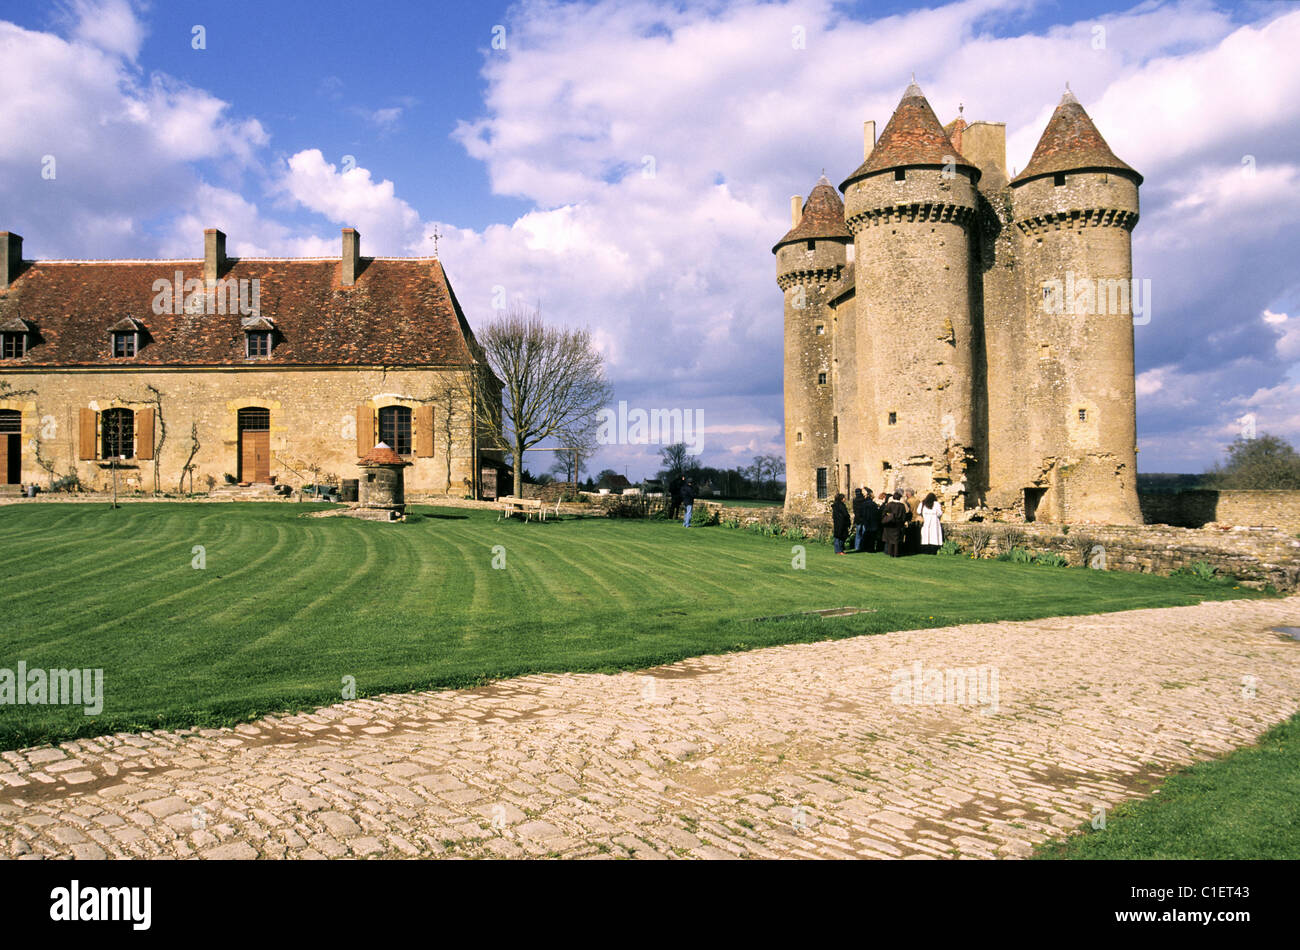 France, Indre, Berry of George Sand, the feudal castle of Sarsay in Sarzay evoked in the Miller of Angibault - Stock Image